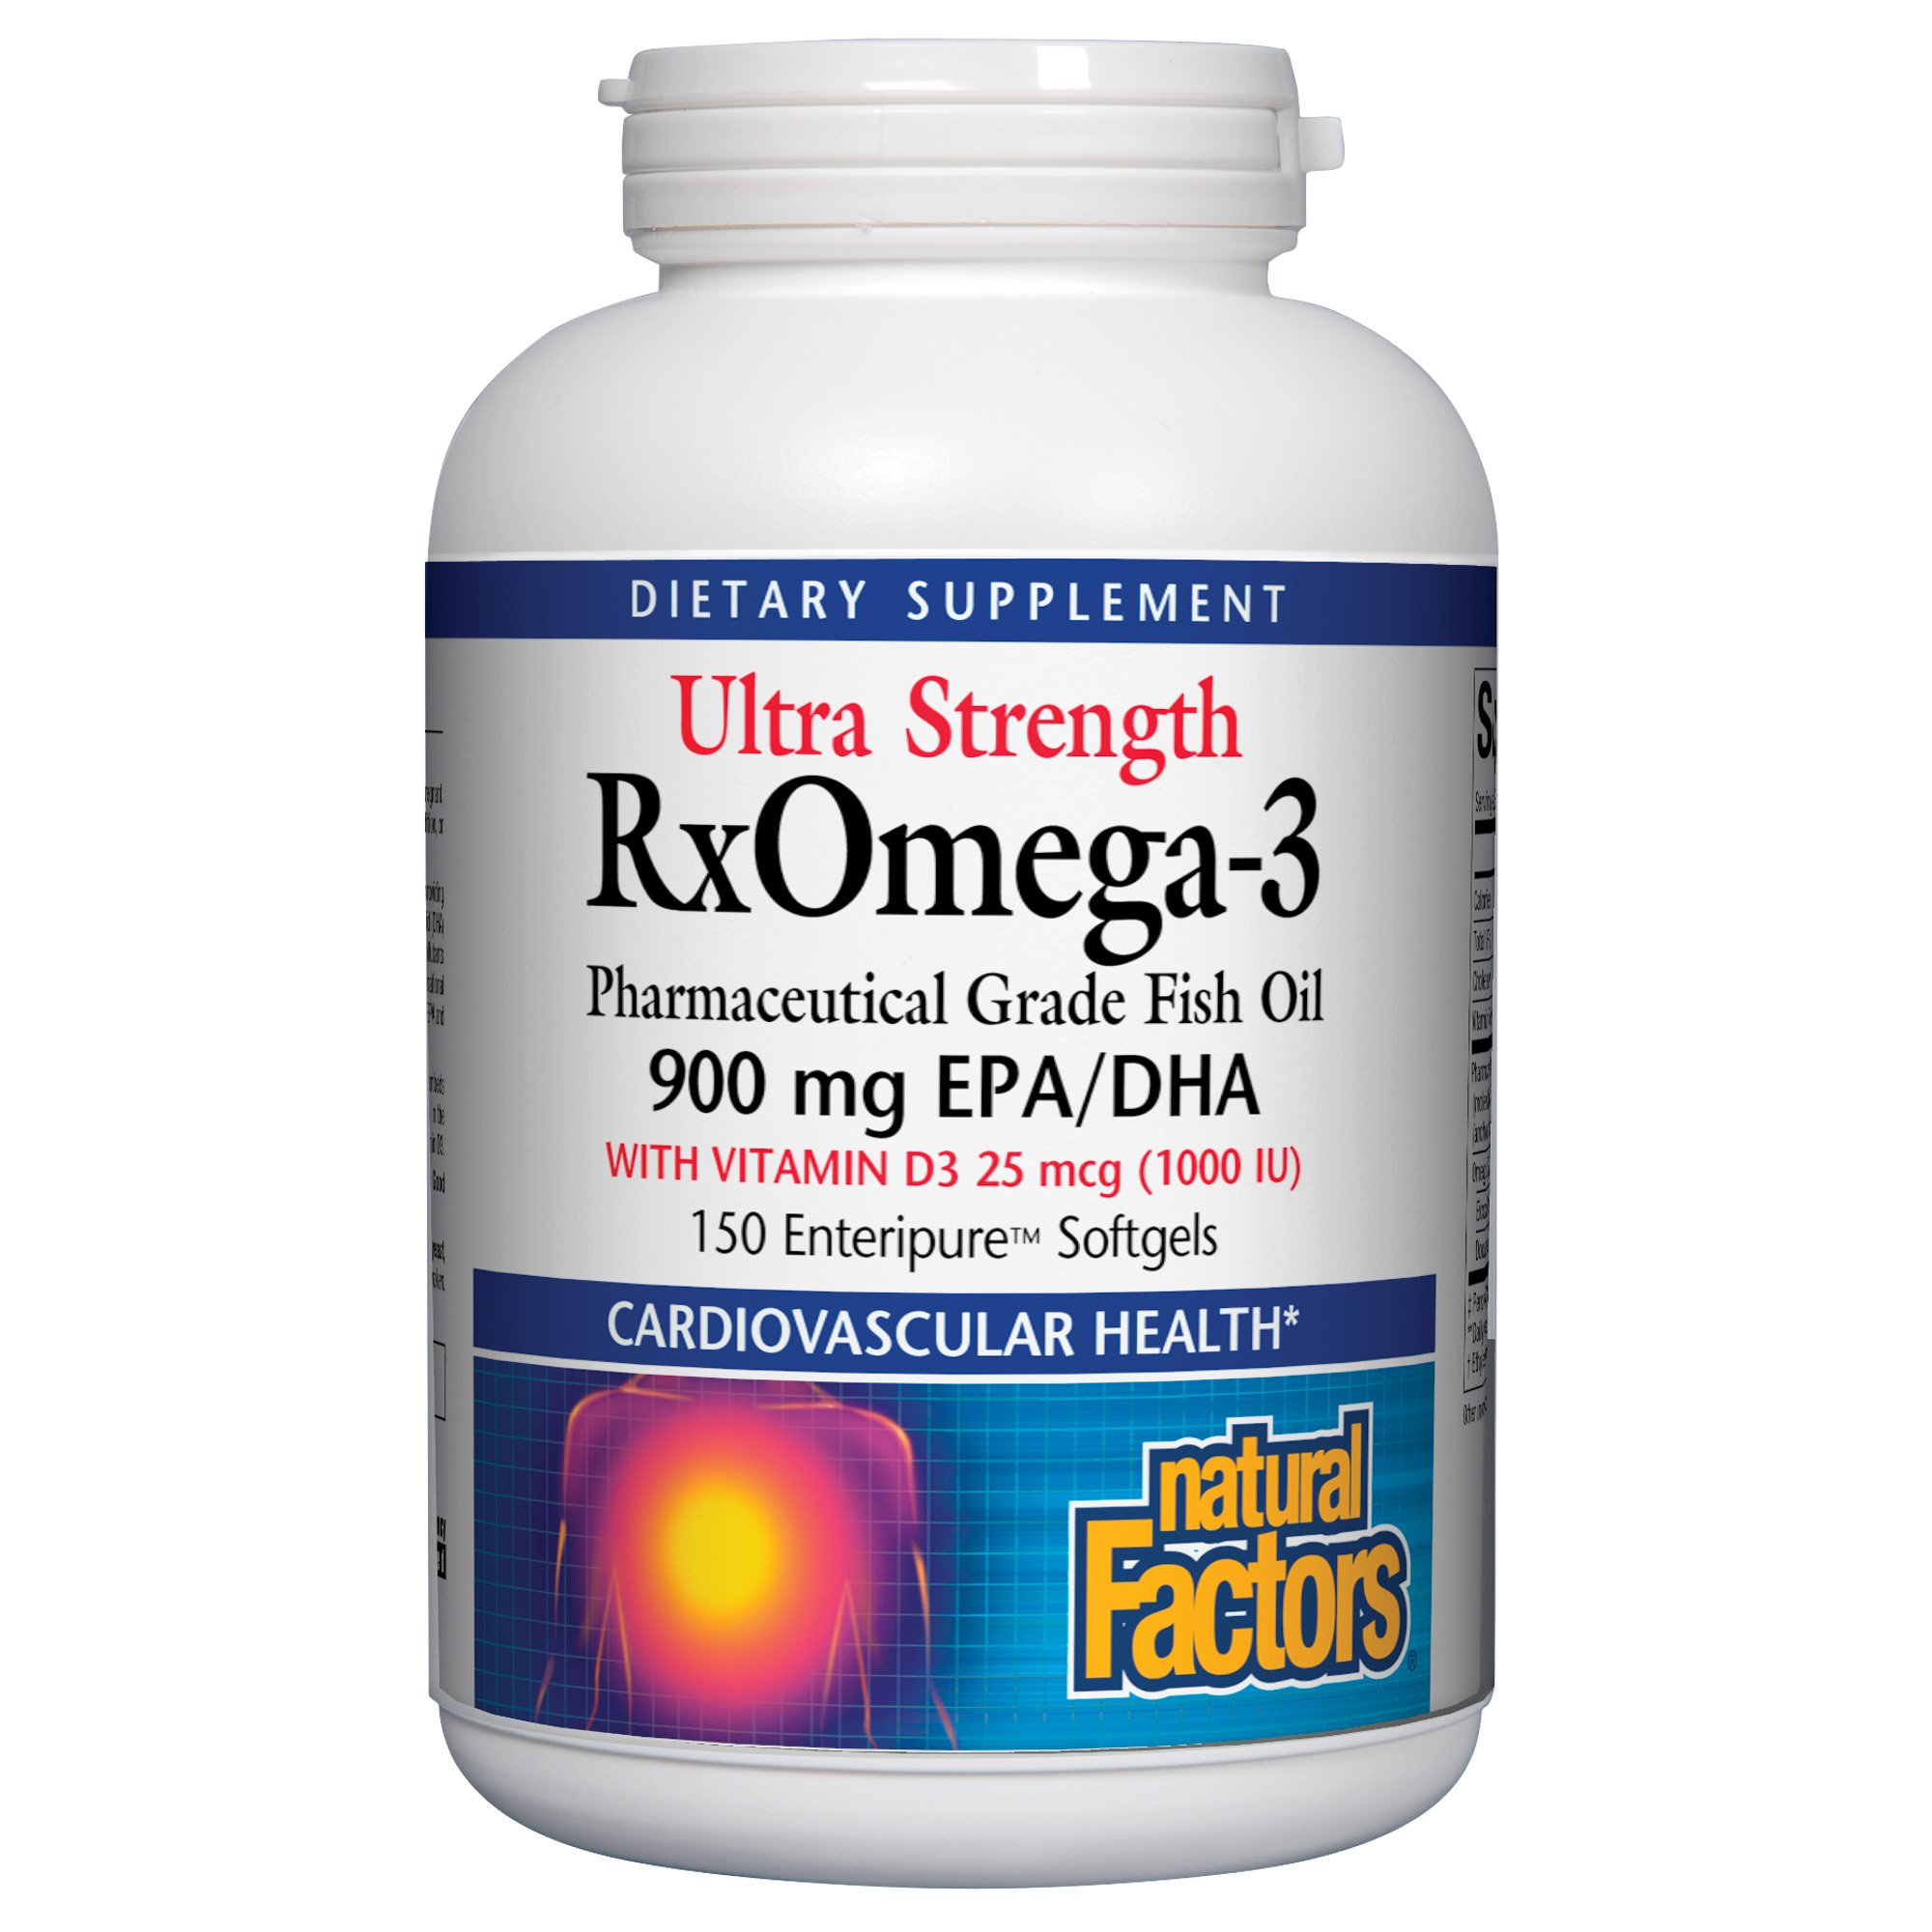 Natural Factors - Ultra Strength RxOmega-3 with Vitamin D3, Supports Cardiovascular Health, 150 Soft Gels